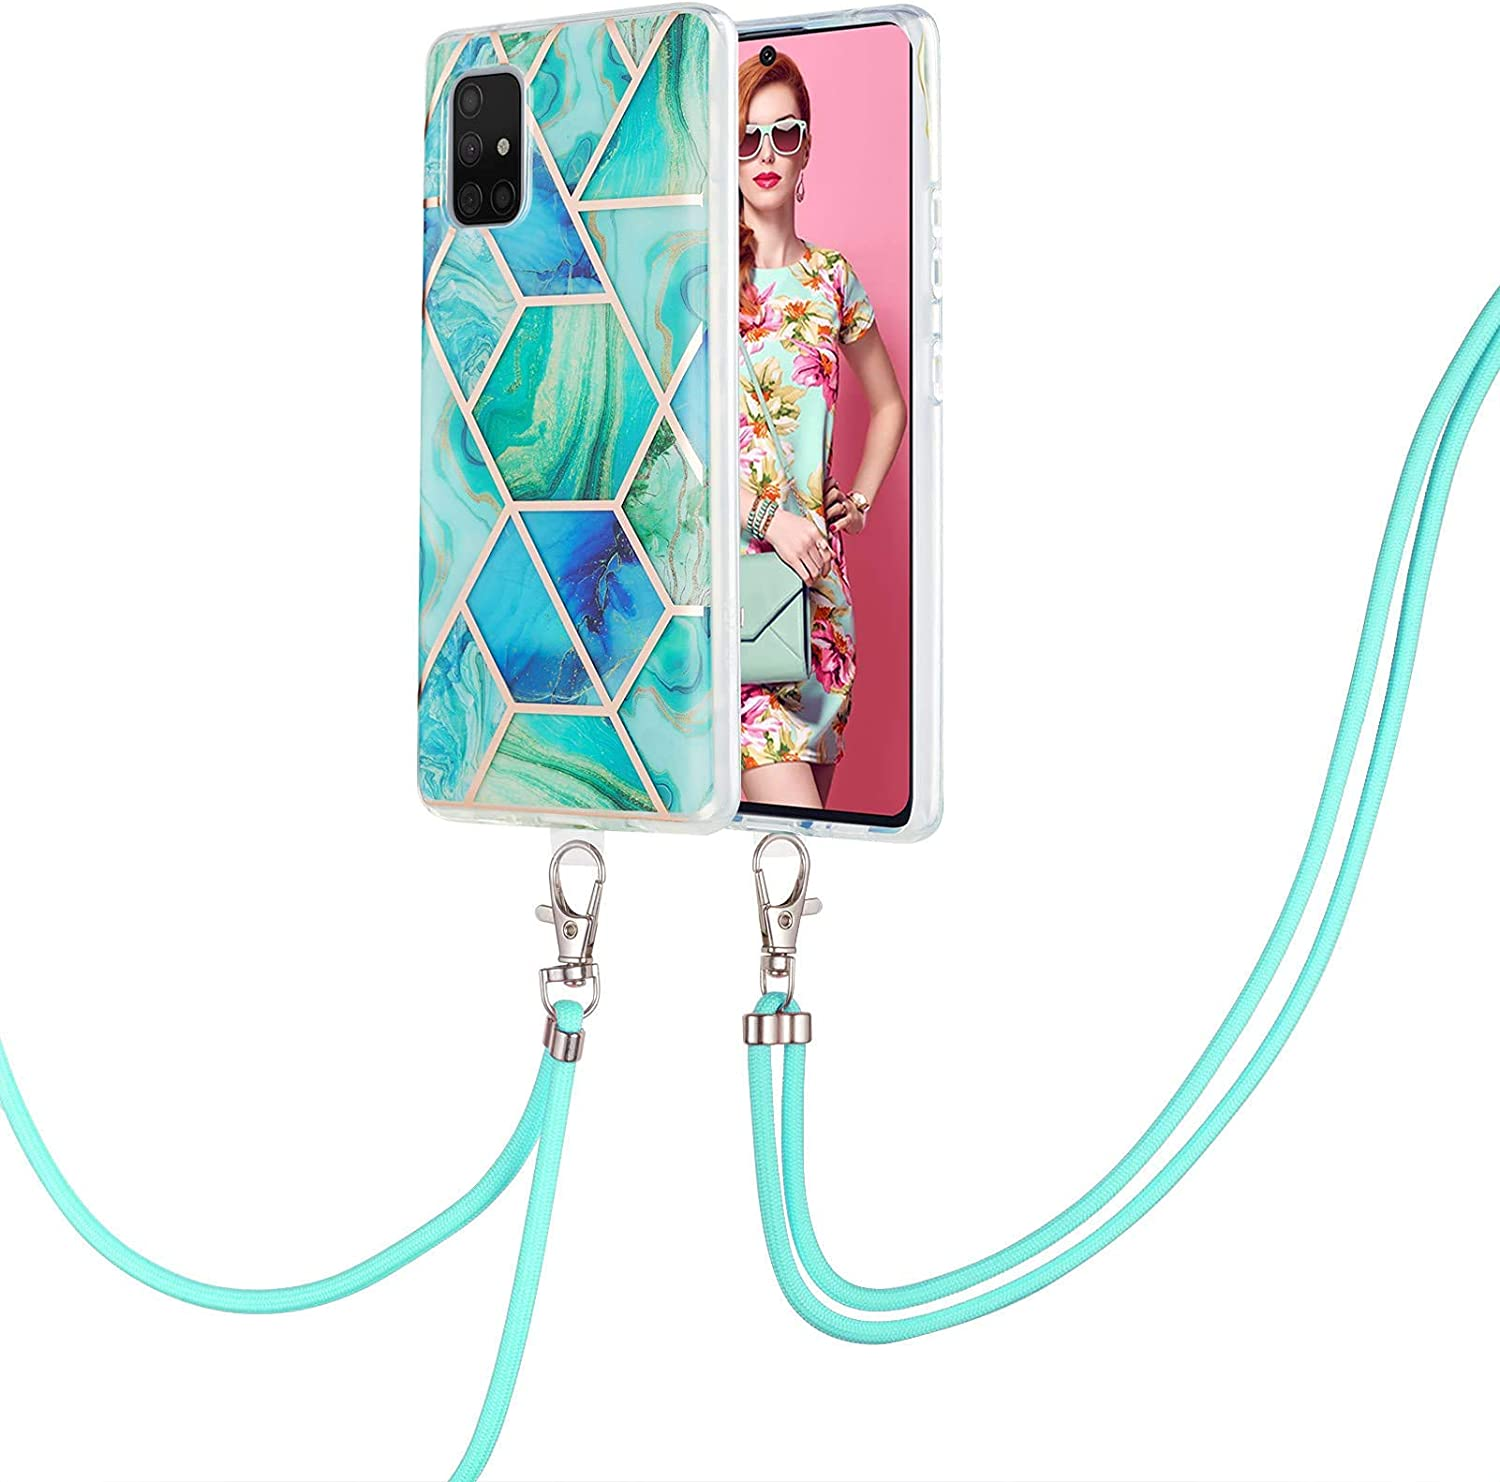 Crossbody Case Compatible with iPhone Xs/X Marble Splicing TPU Cell Phone Mobile Cover Holder with Neck Cord Lanyard Strap(Green)